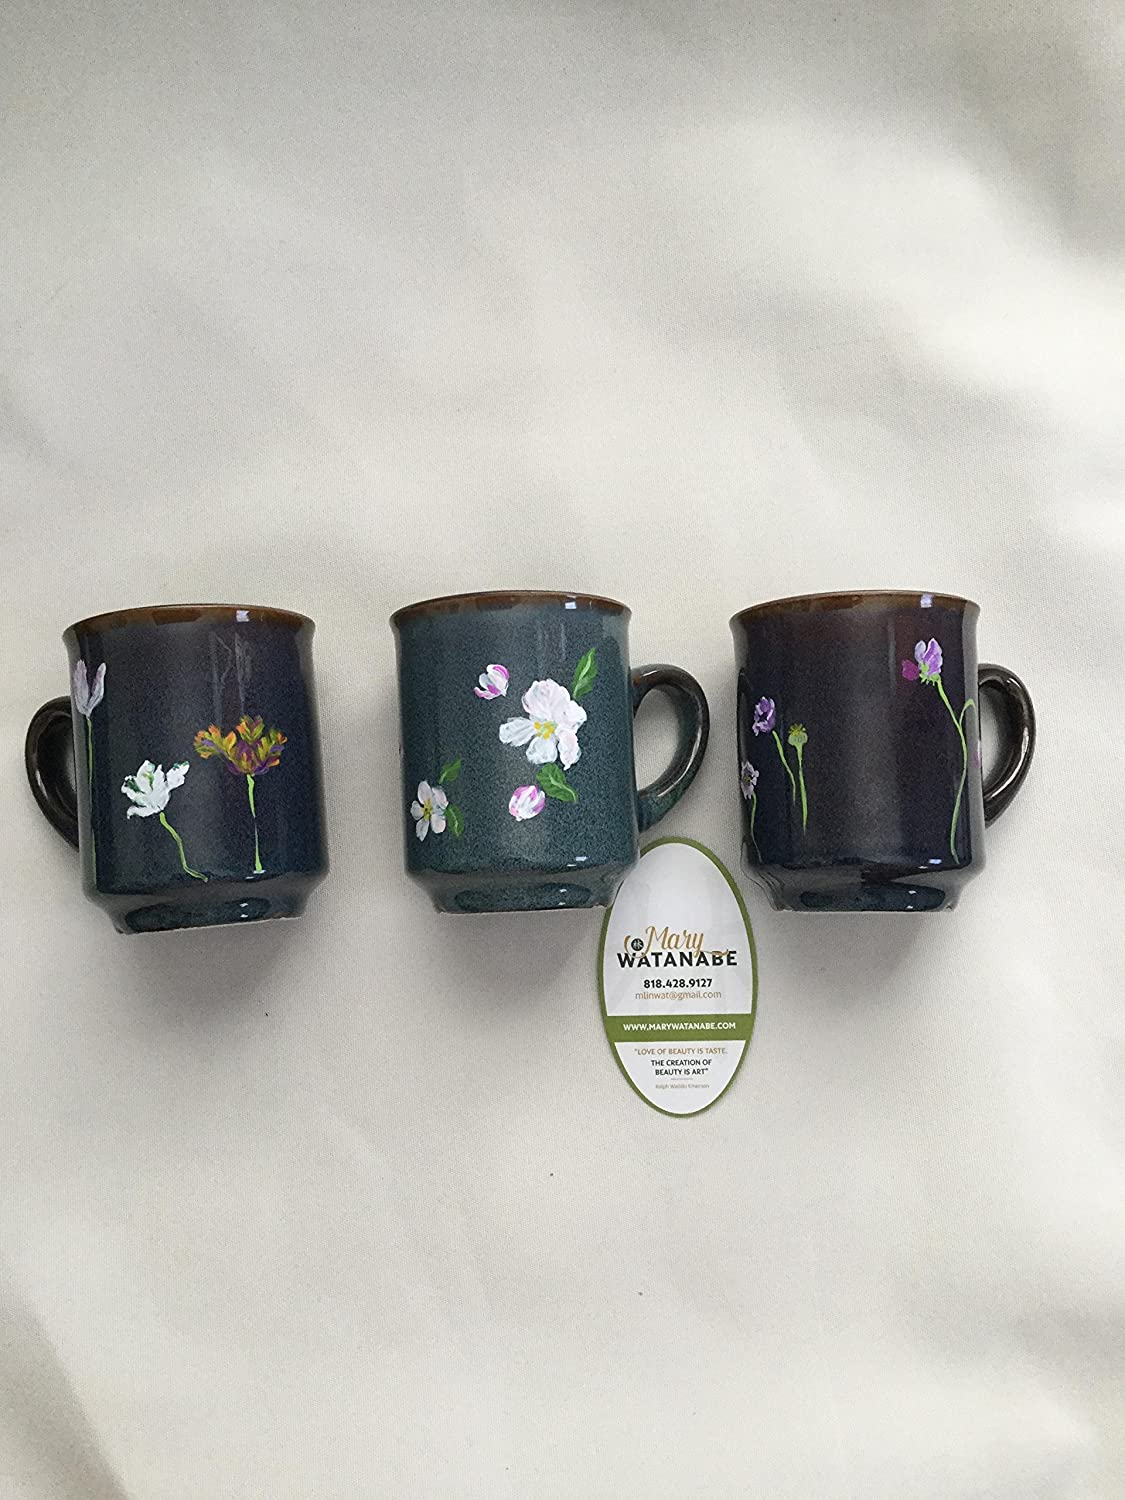 Spring Flowers Glazed Textured Coffee Mug Tea Cup Hand Painted Flowers Gift For Birthday Mother S Day House Warming Best Friend Anniversary Handmade